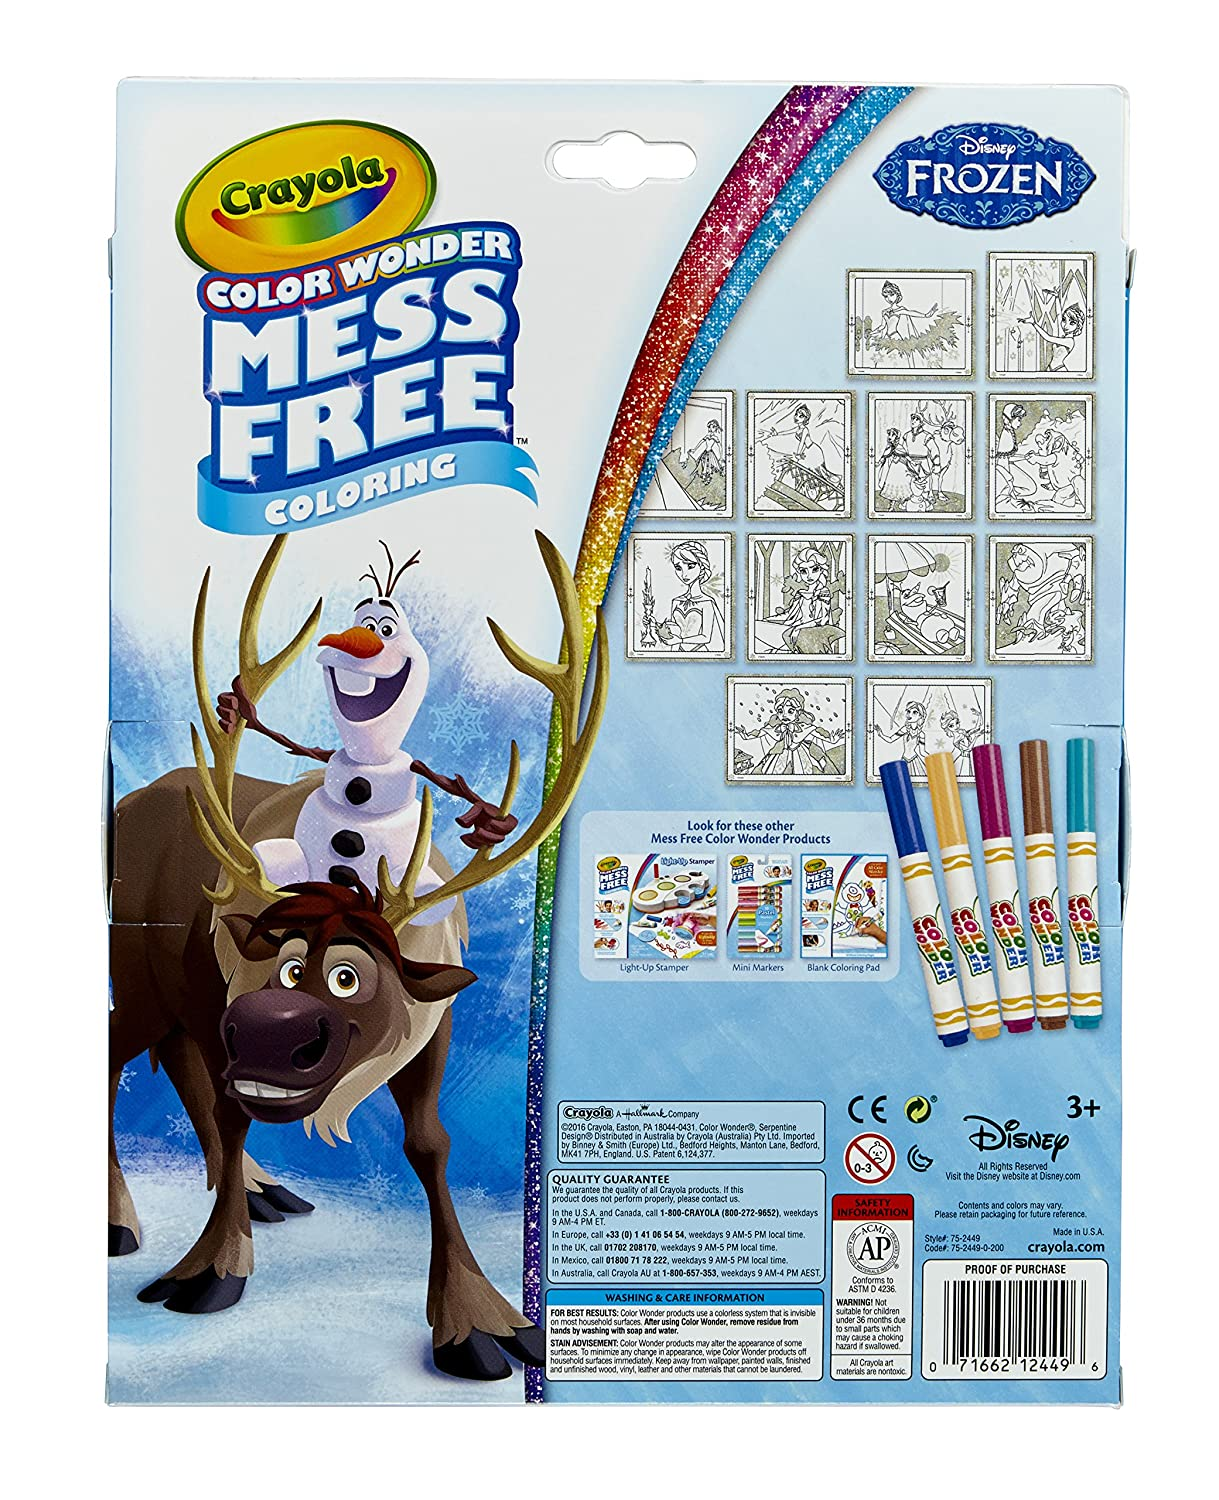 Crayola Frozen Color Wonder Mess-Free Coloring Glitter Paper and Markers Great for Travel Binney /& Smith 75-2449 Art Tools